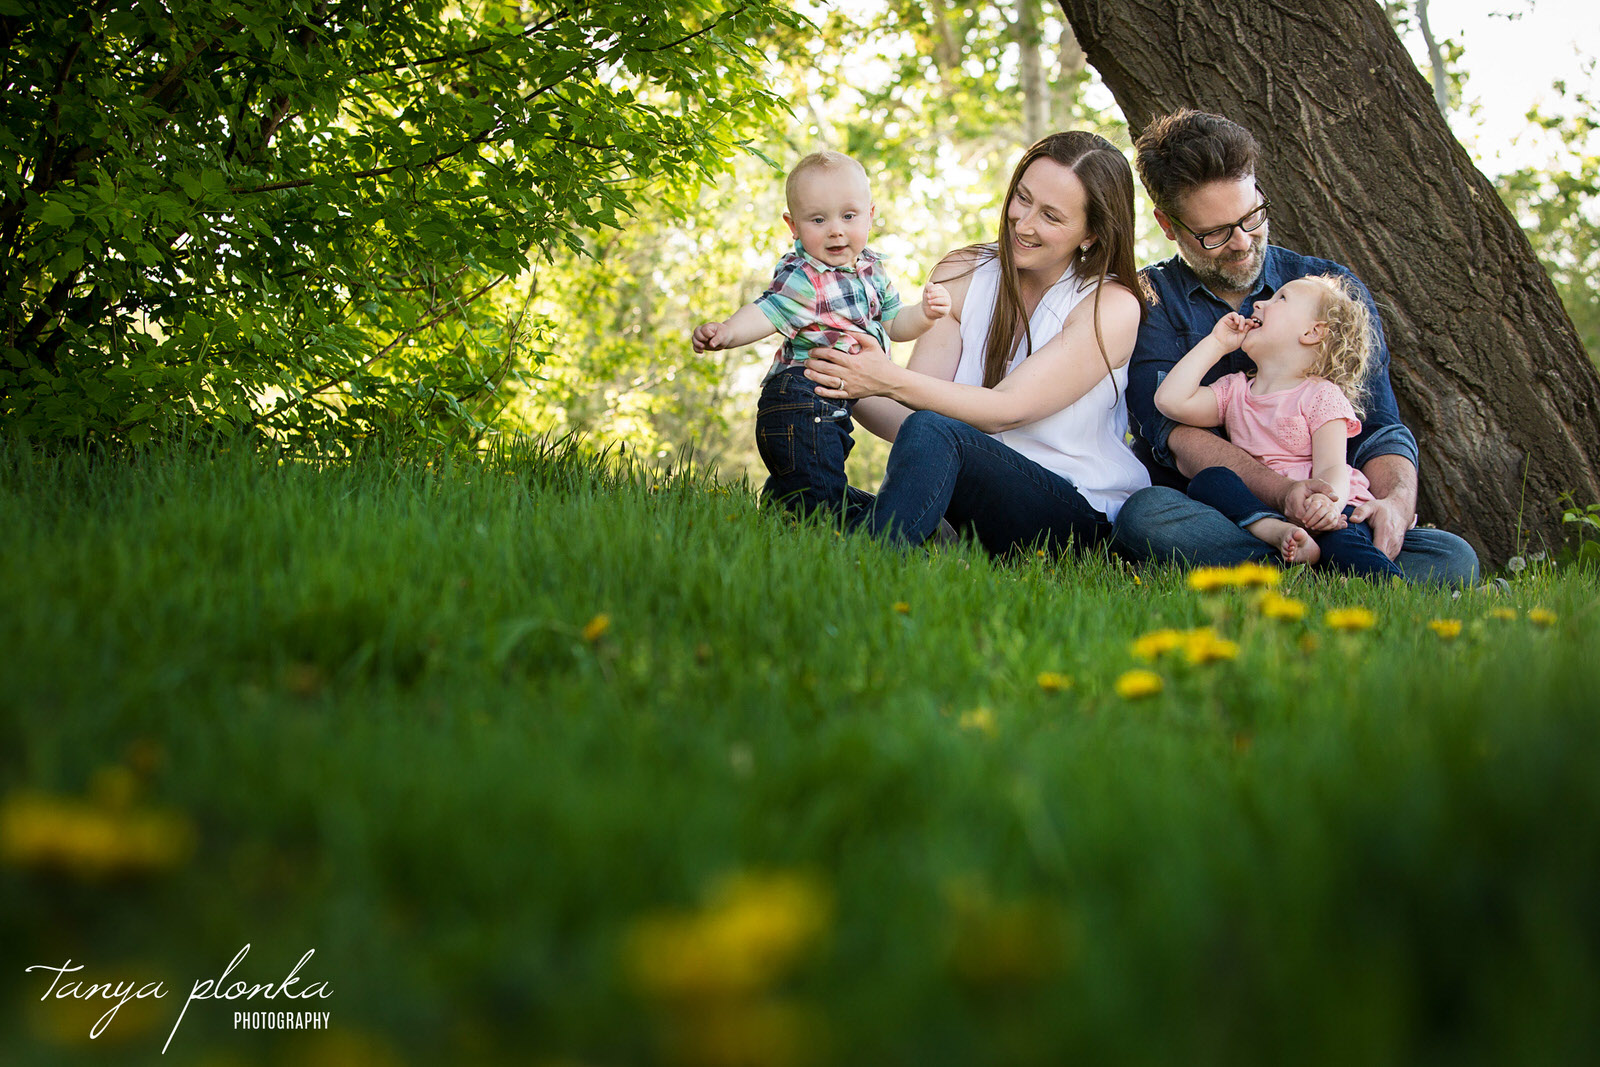 family sits in green grass with dandelions in foreground